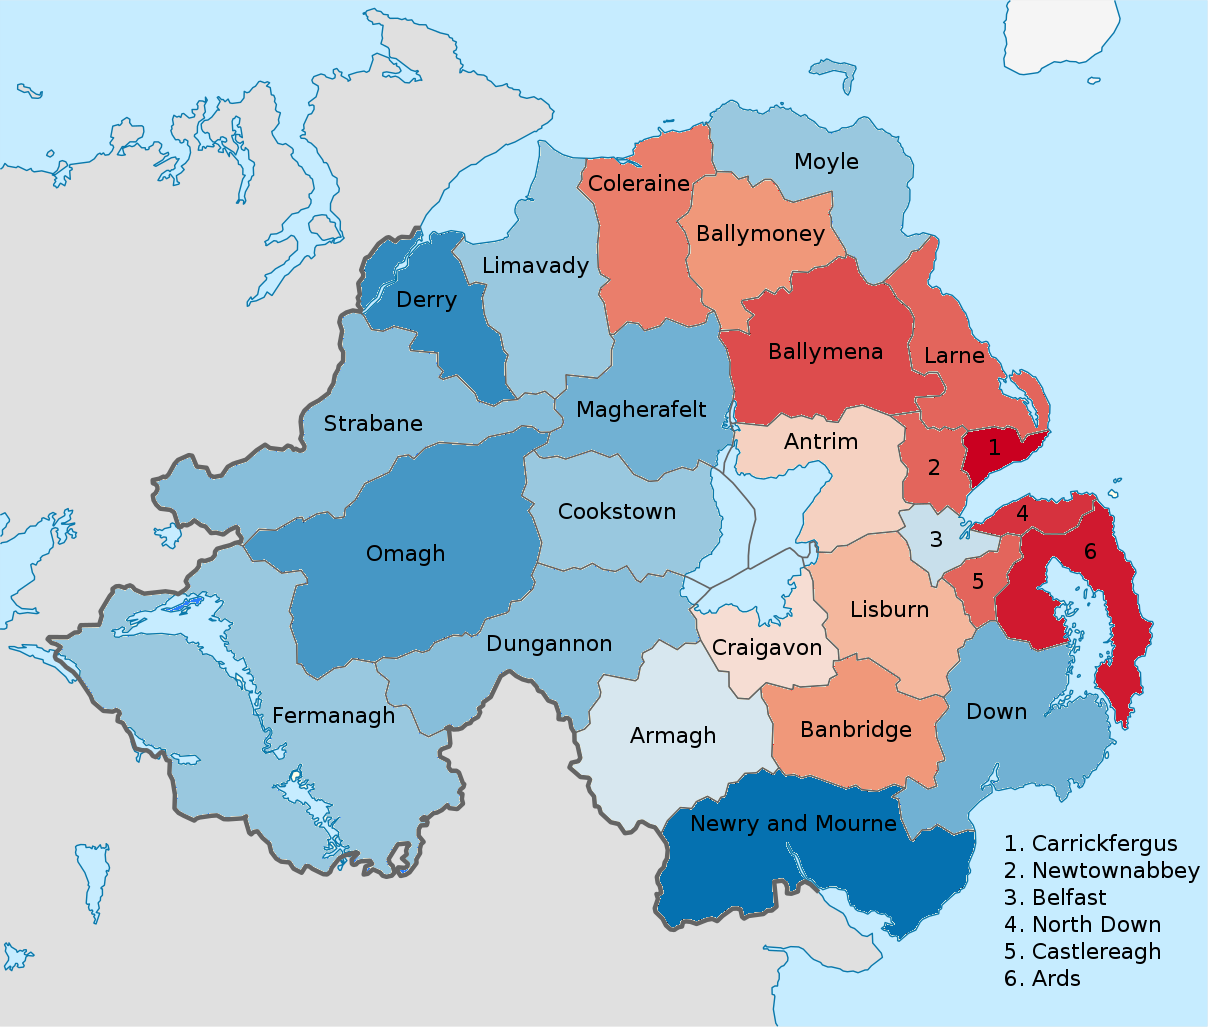 an overview of the religions in northern ireland There are different levels of government in northern ireland this ranges from your local council, the northern ireland assembly, to the european parliament and uk parliament at westminster.